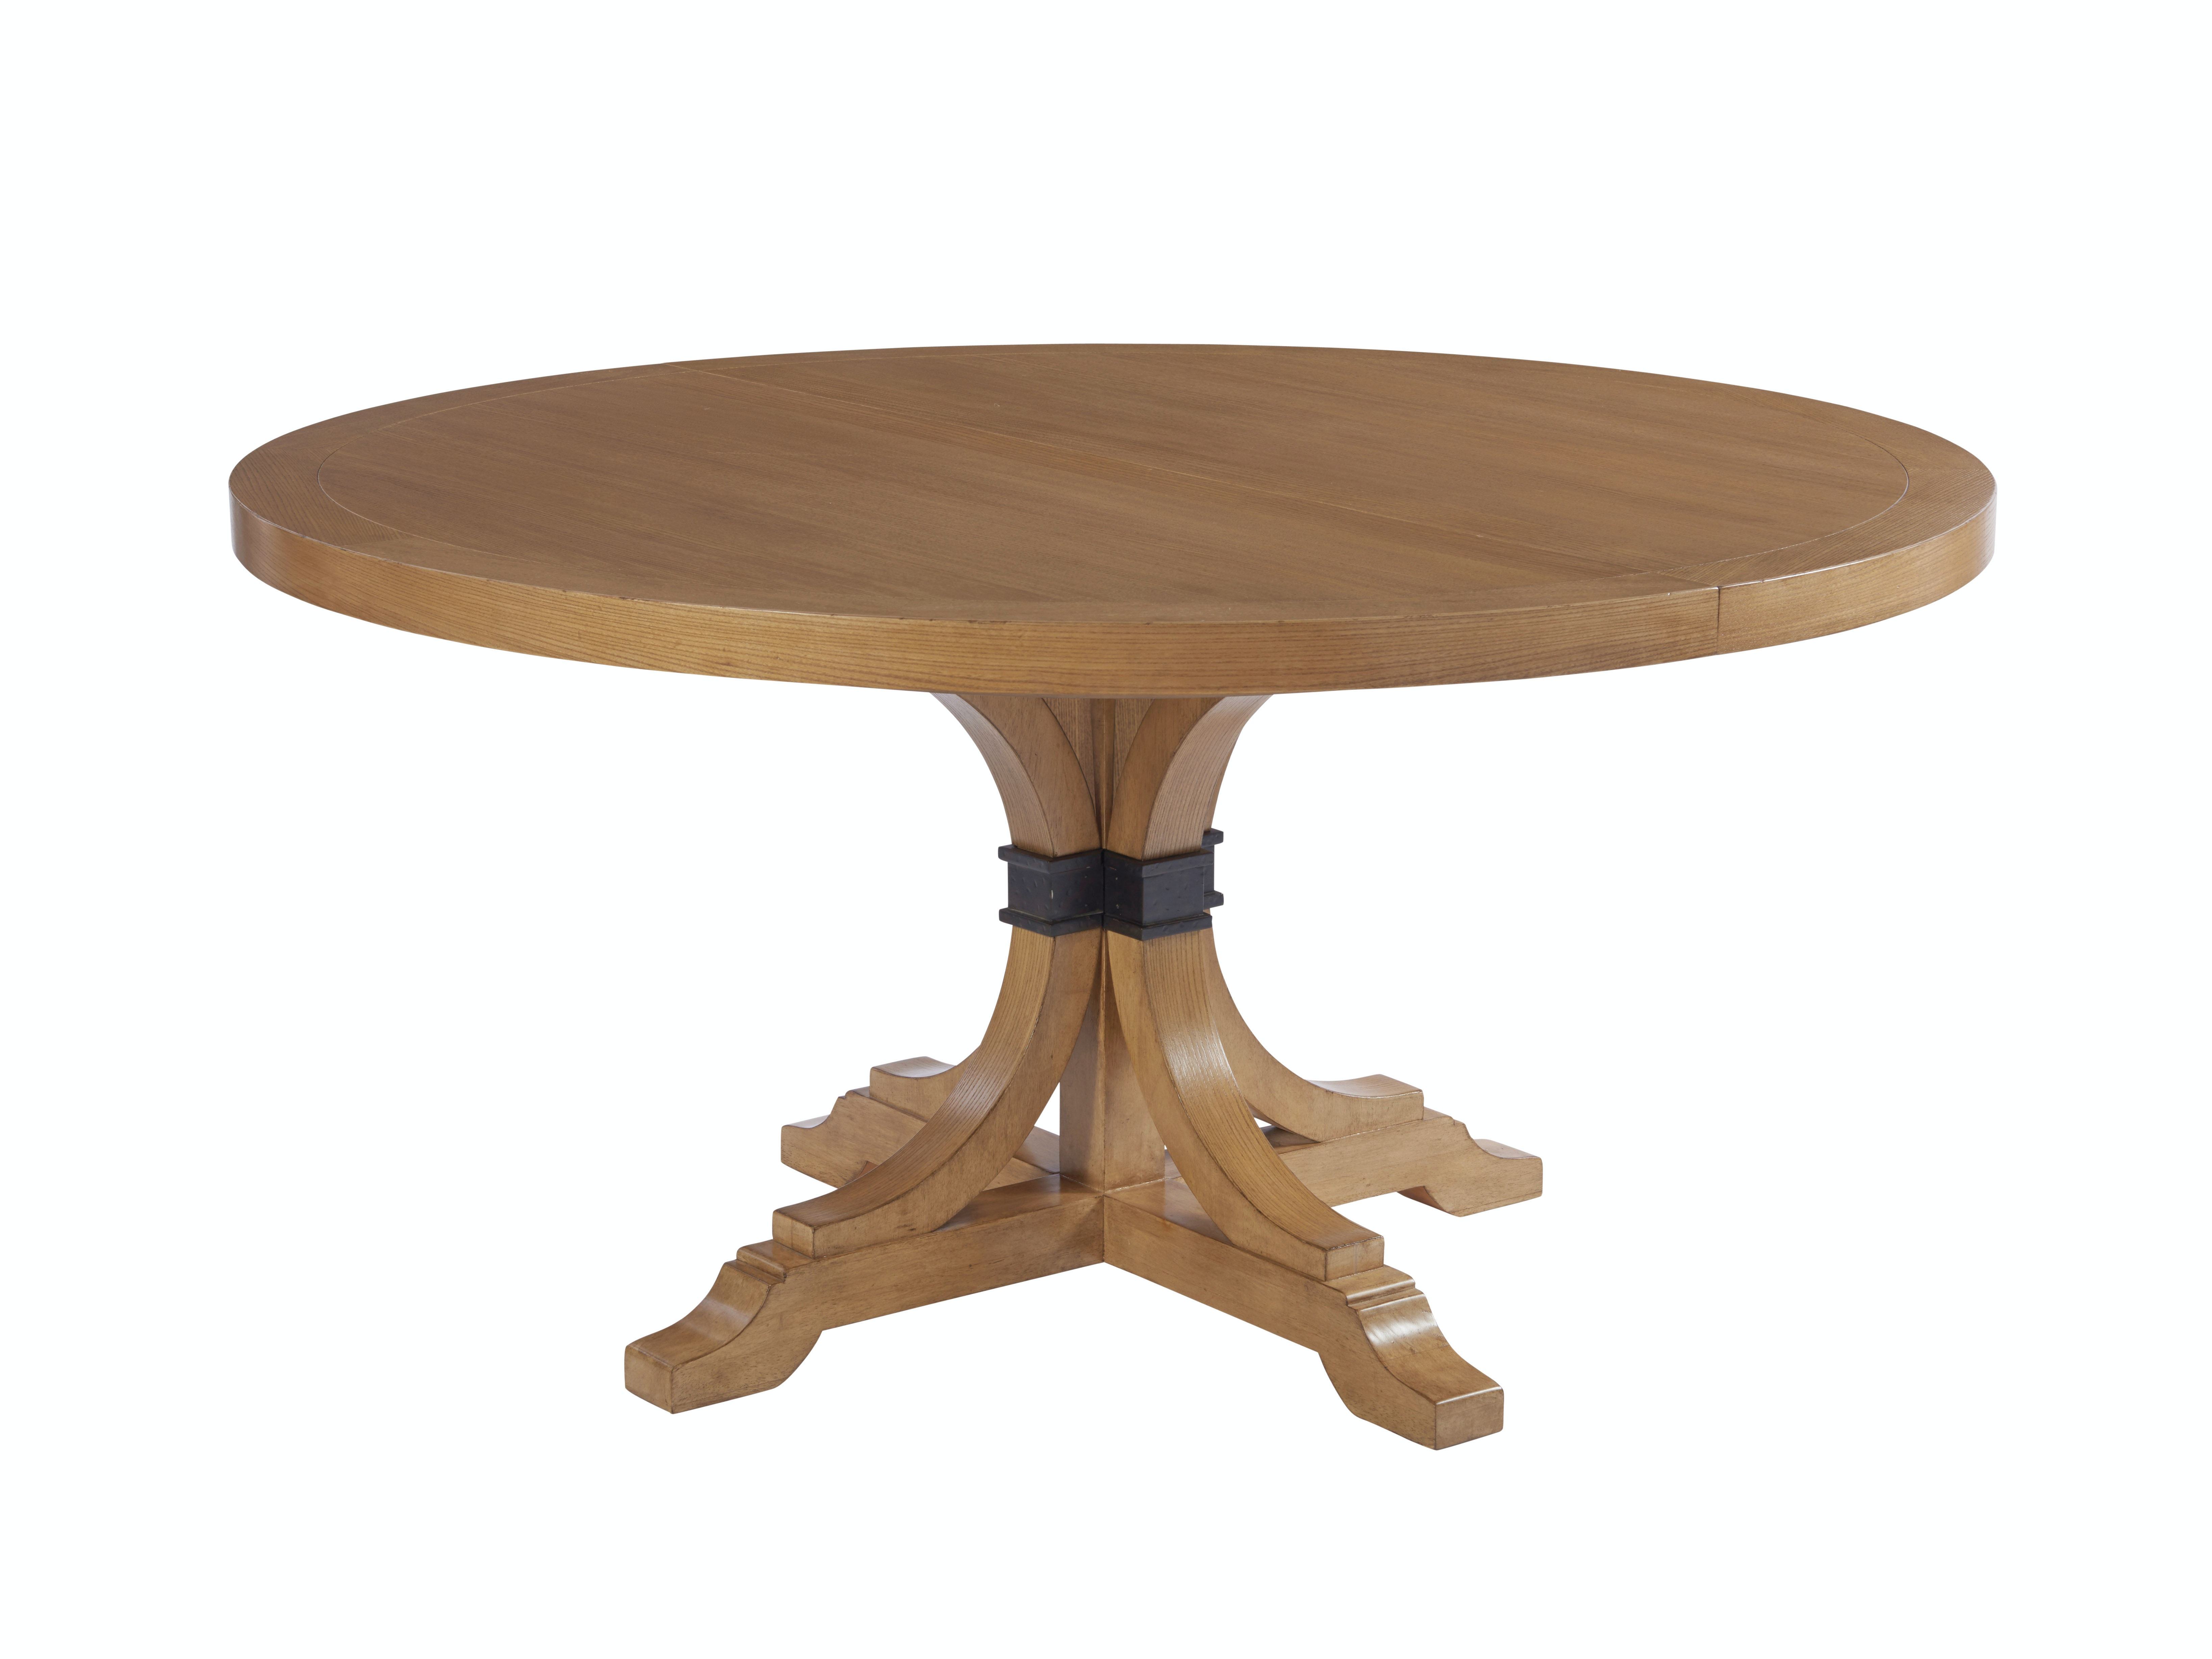 Barclay Butera By Lexington Dining Room Magnolia Round Dining Table